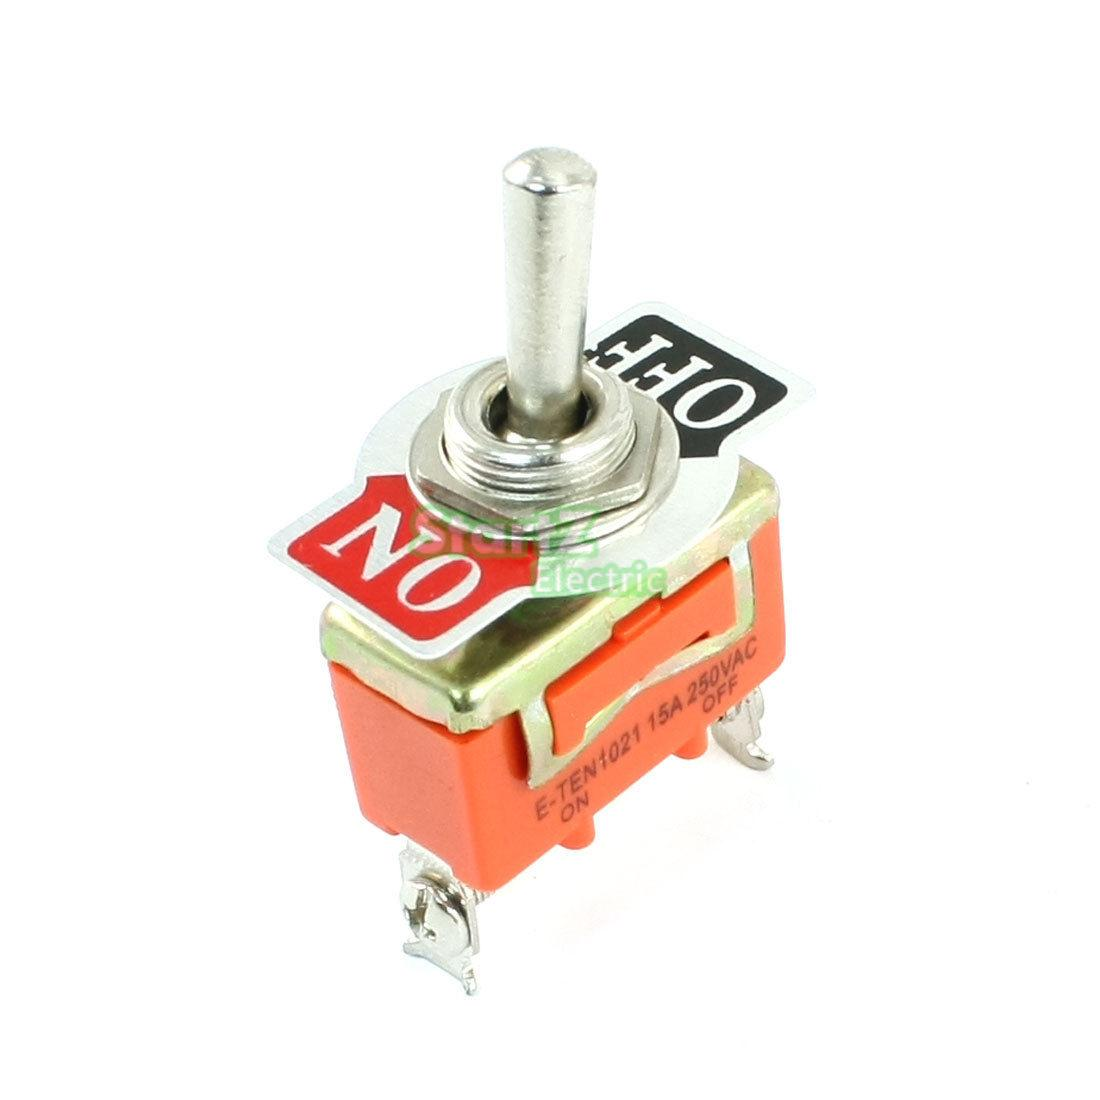 On/Off 2 Positions 2 Terminal Toggle Switch 250V 5pcs lot high quality 2 pin snap in on off position snap boat button switch 12v 110v 250v t1405 p0 5